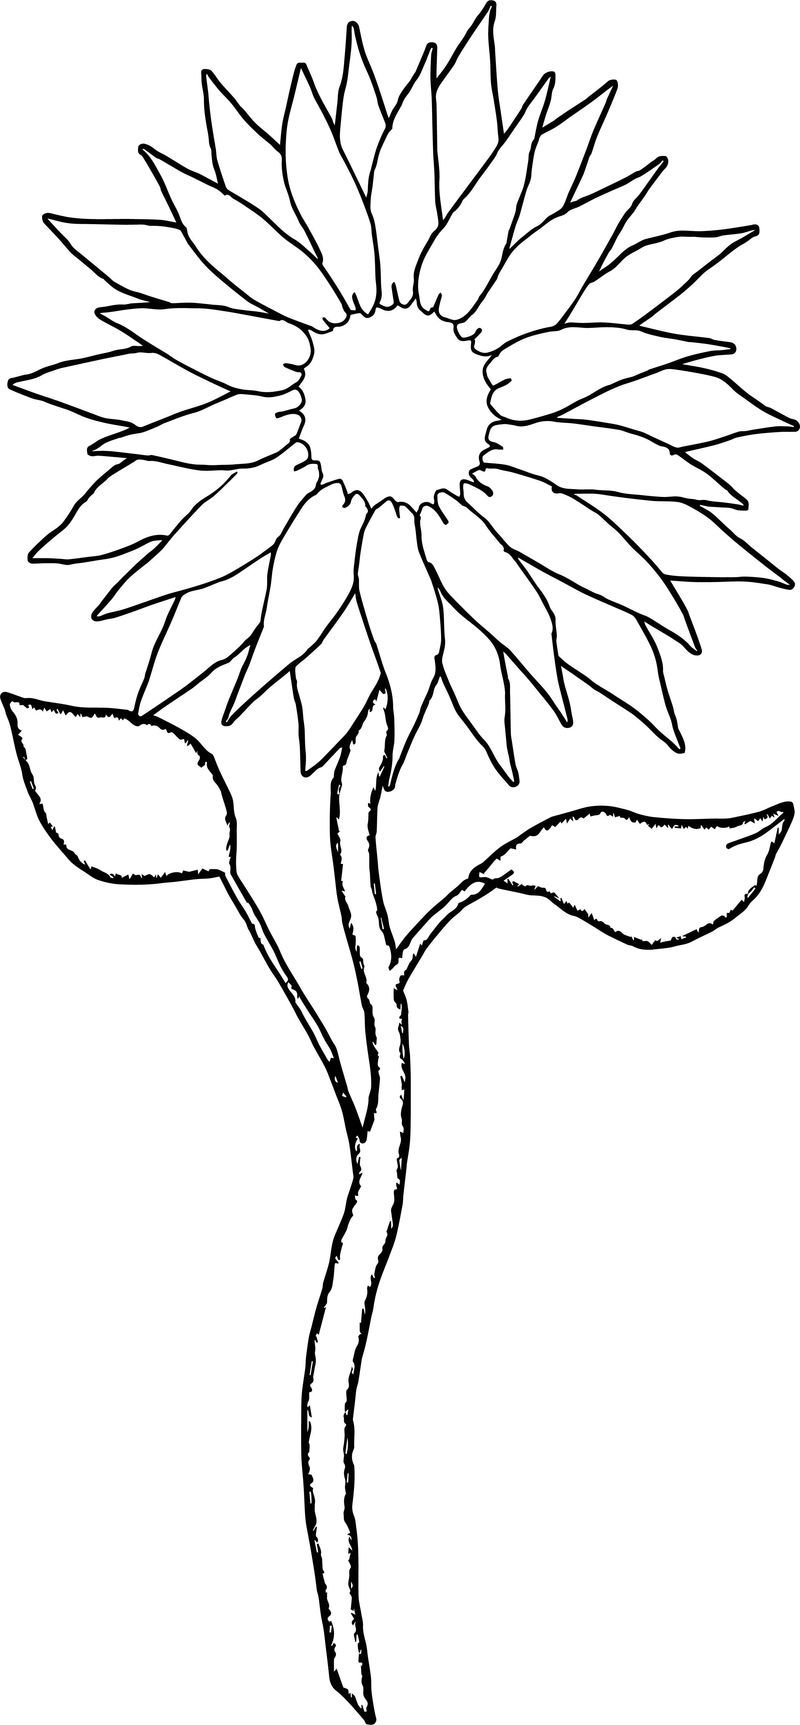 Sunflower Two Coloring Page Sunflower Coloring Pages Pokemon Coloring Pages Shape Coloring Pages